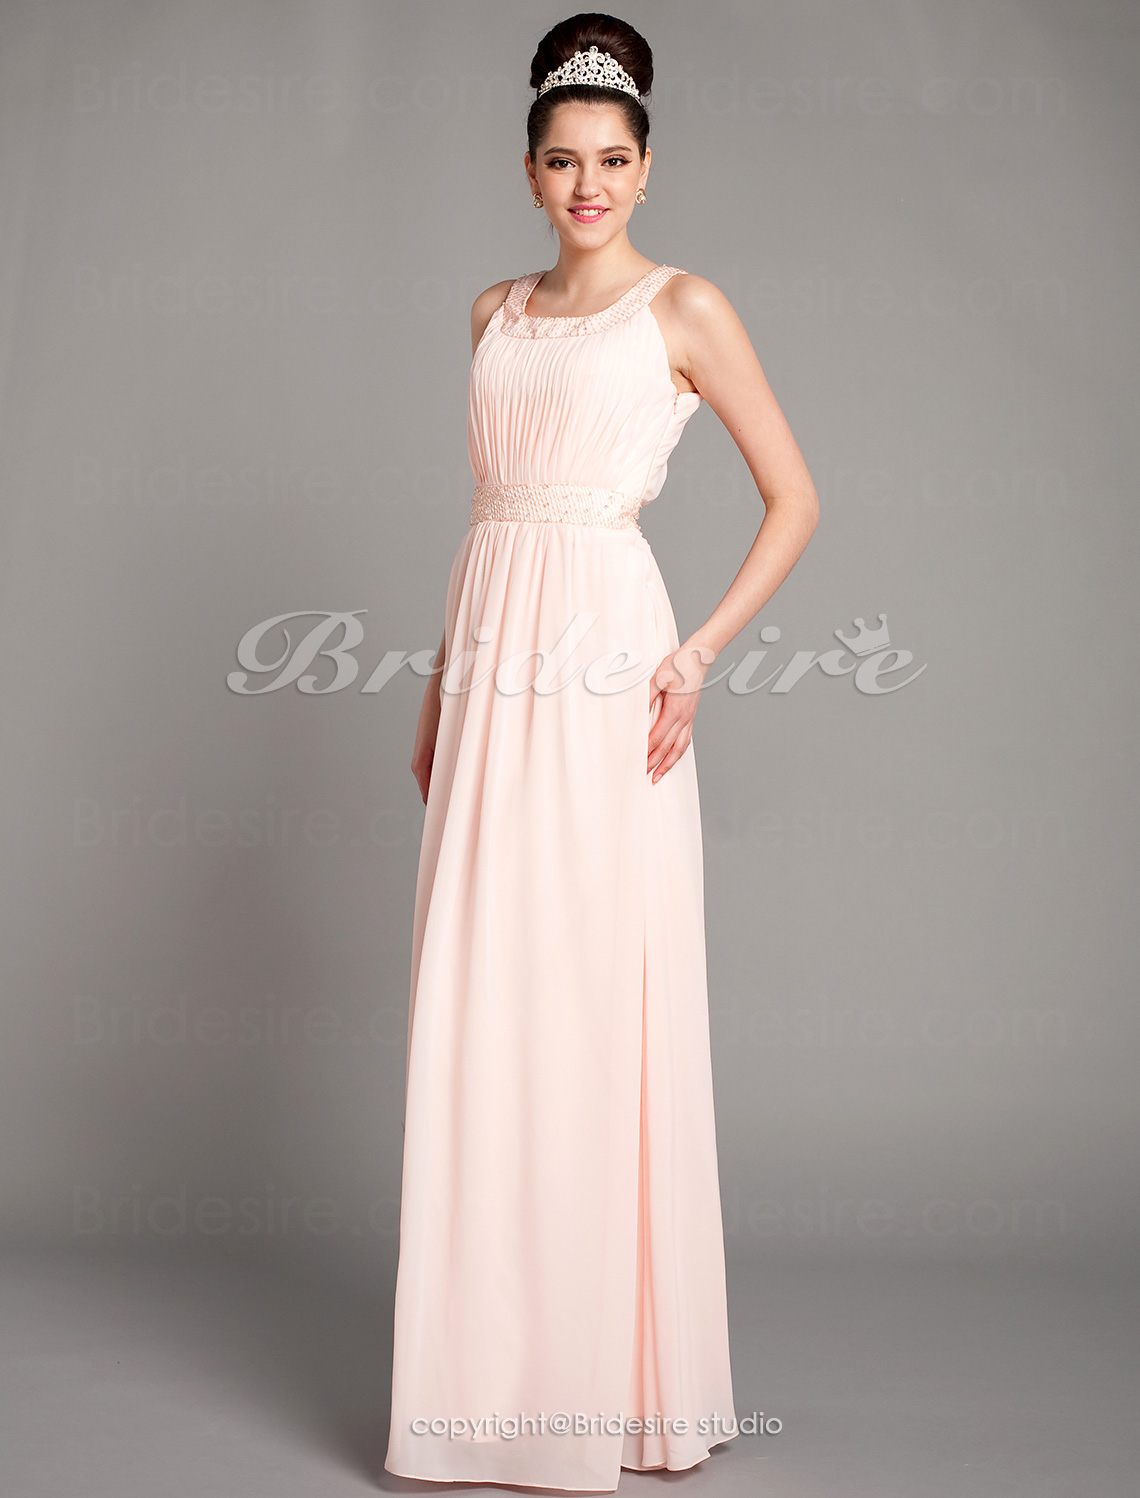 Sheath/Column Chiffon Floor-length Scoop Evening Dress With Beading